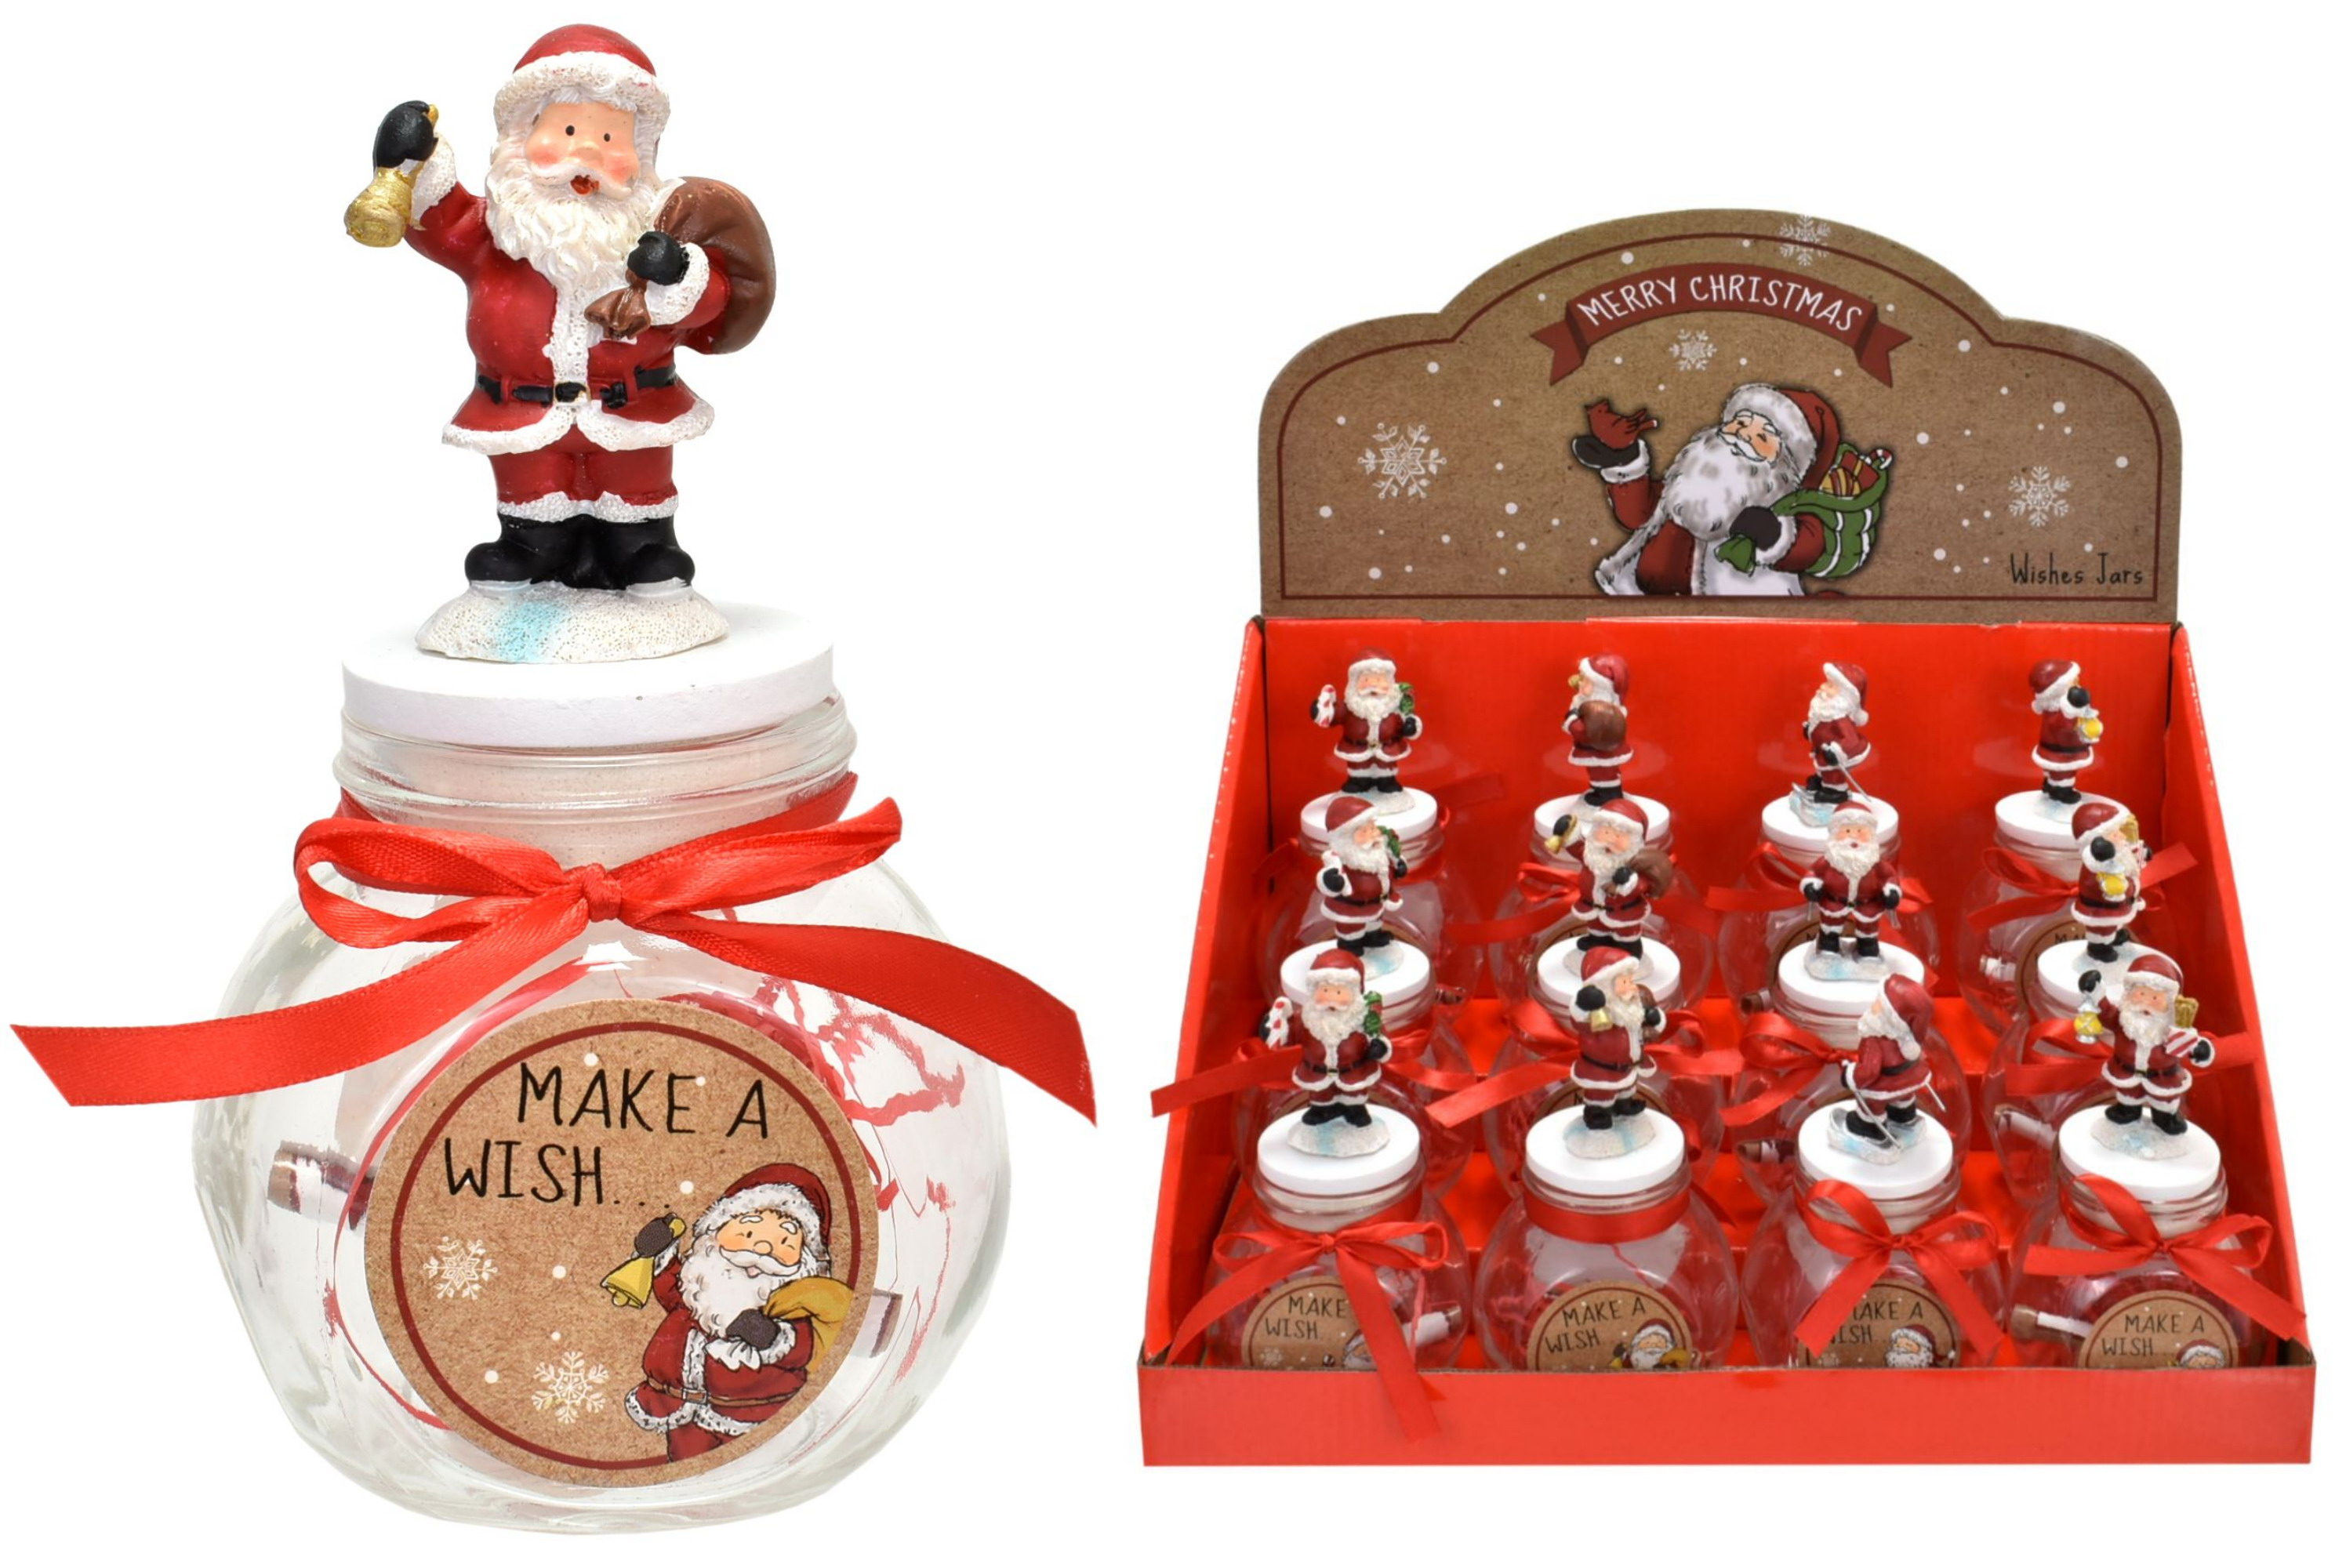 Merry Christmas Make A Wish Jar In Display Box